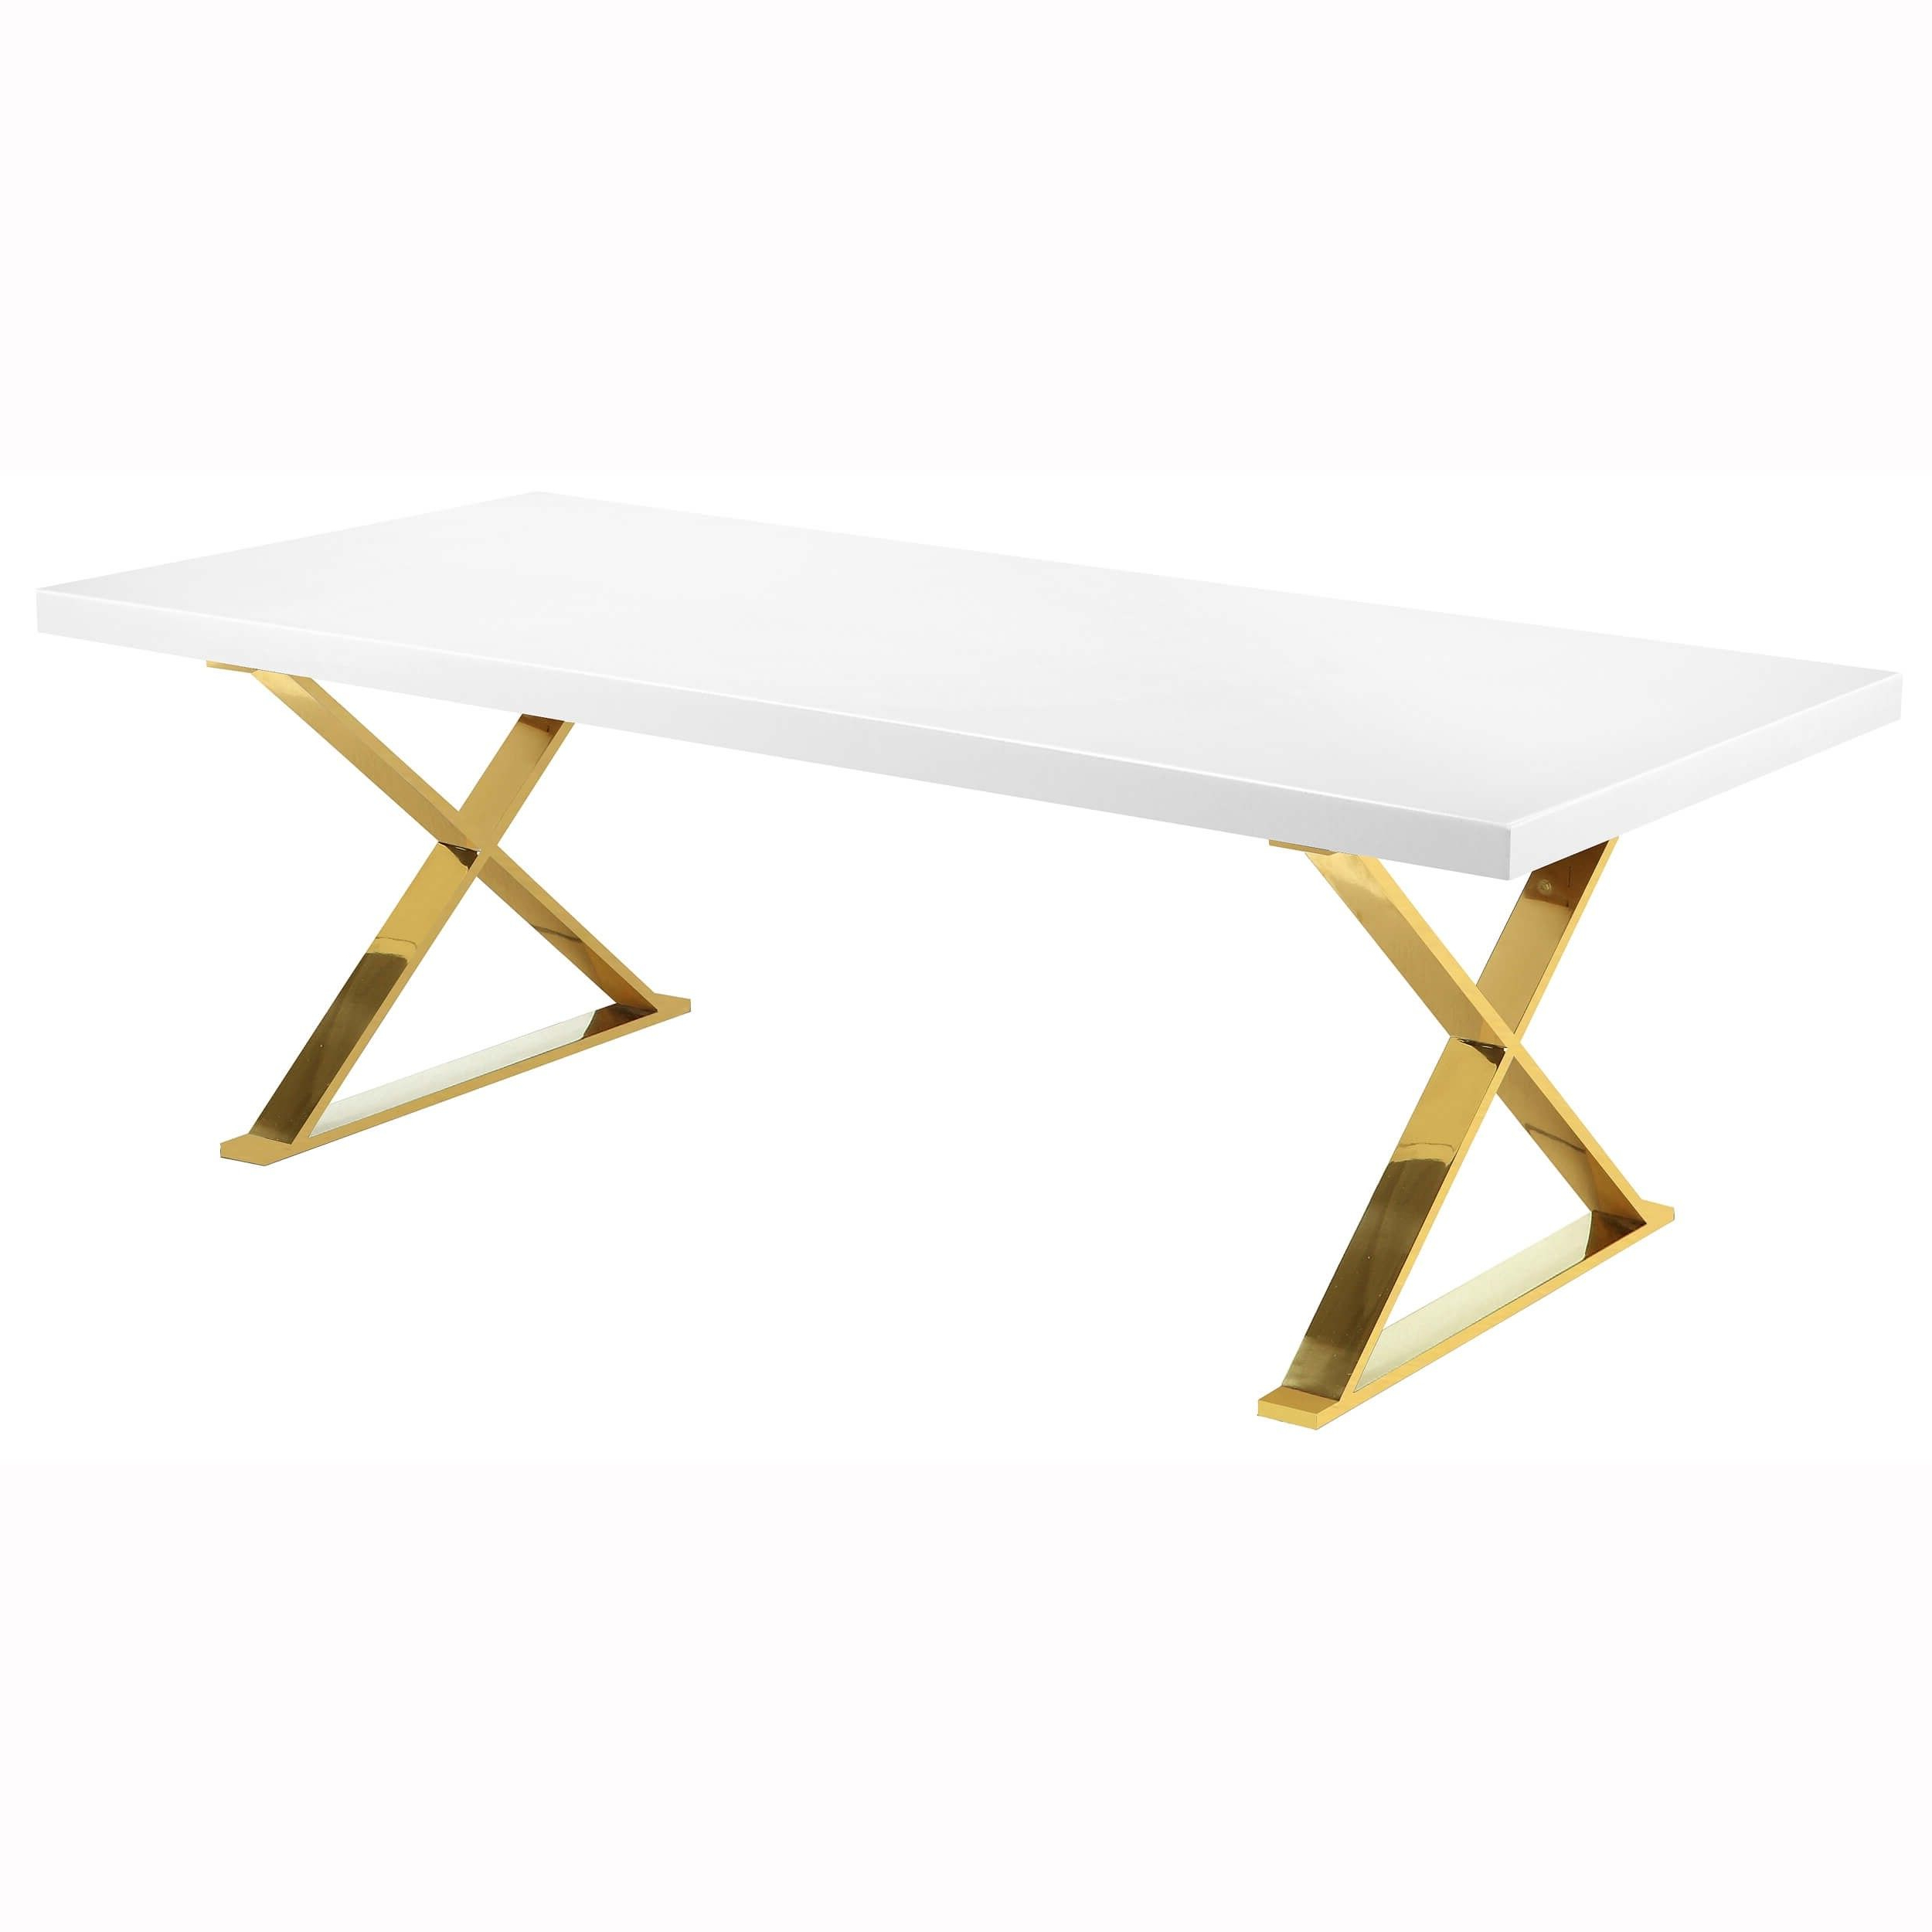 Dining Tables In Seared Oak With Brass Detail In Most Up To Date Alexa Dining Table, White/polished Gold Base (View 14 of 30)